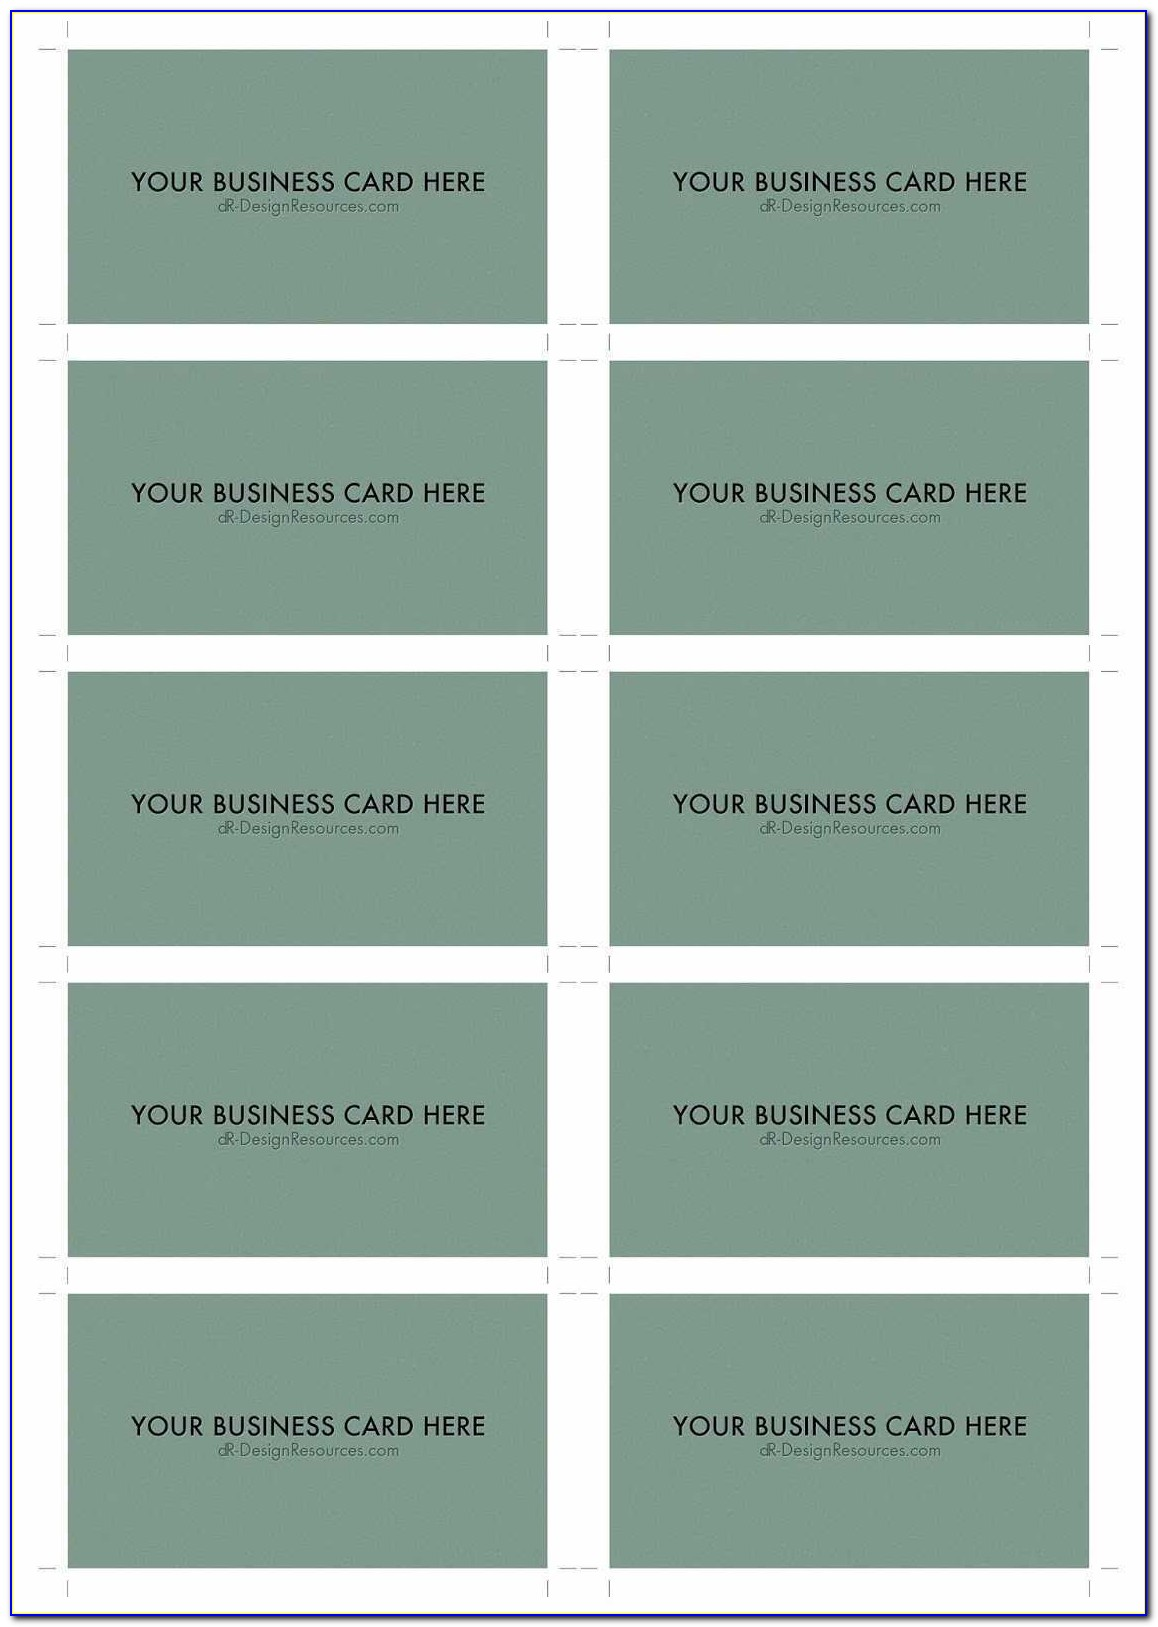 Avery Templates Business Cards 10 Per Sheet Luxury 10 Business Card Template Business Card Design